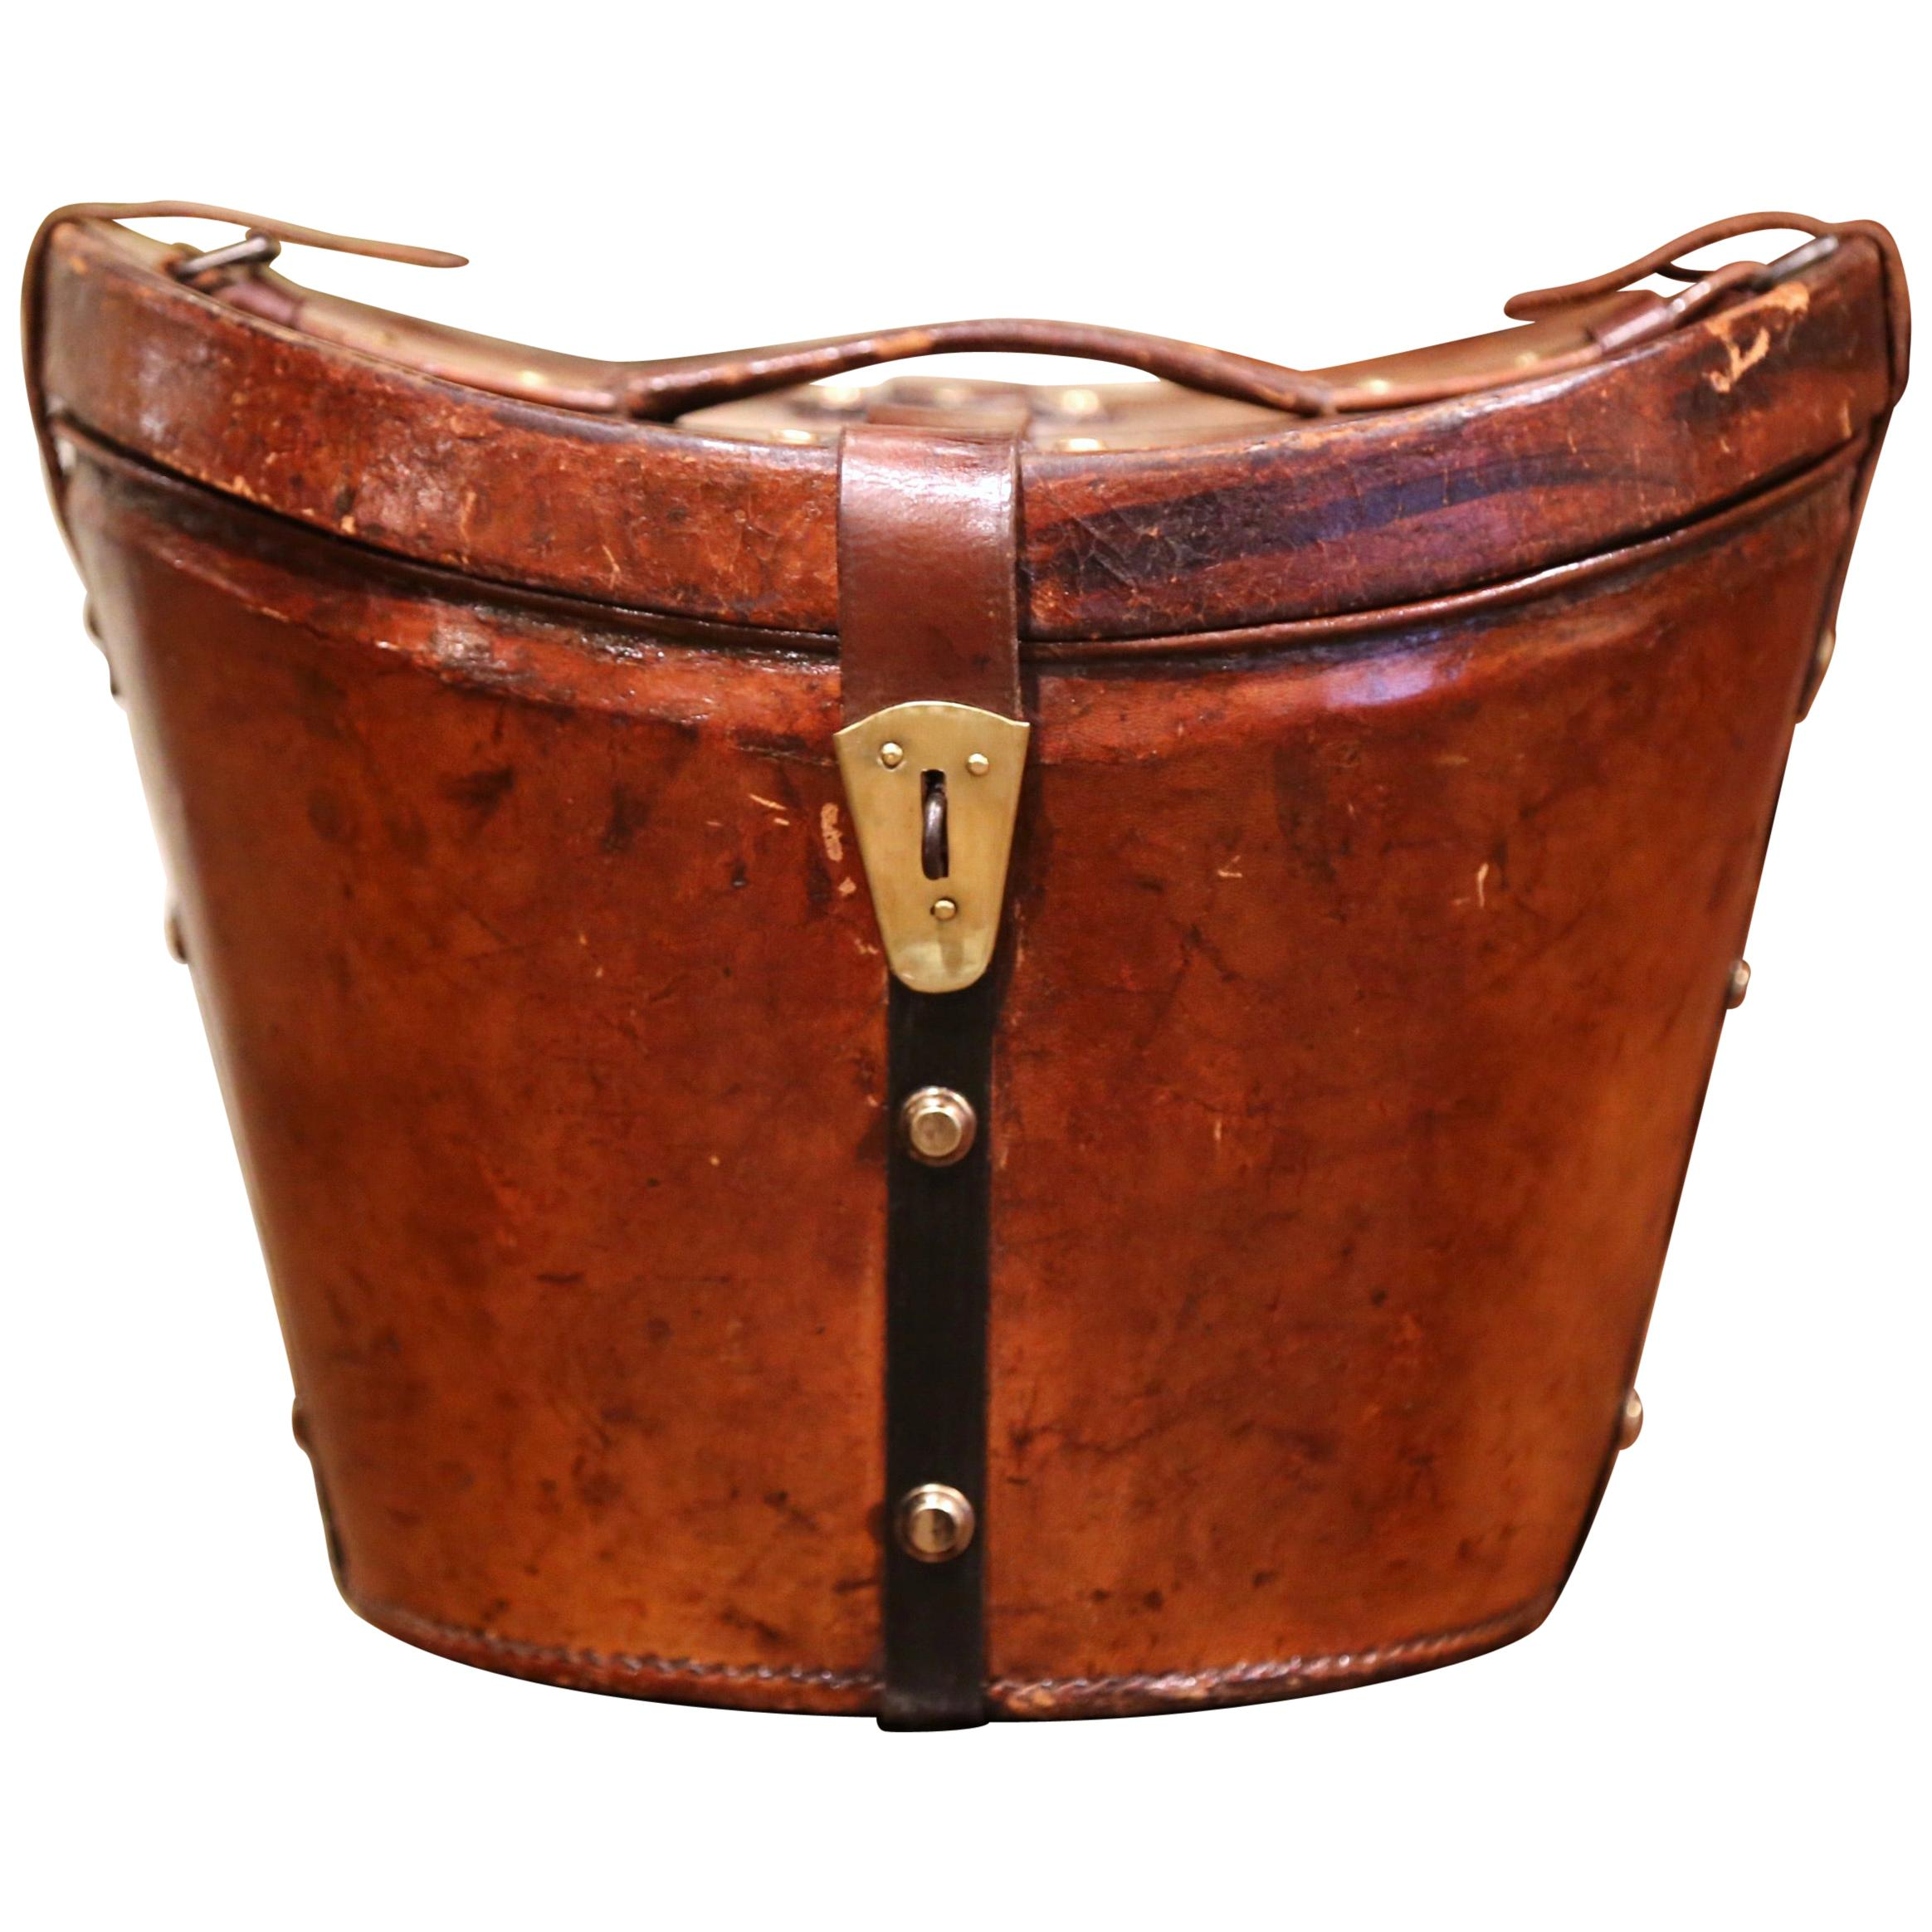 Mid-19th Century French Oval Pigskin Leather Top Hat Box from Paris